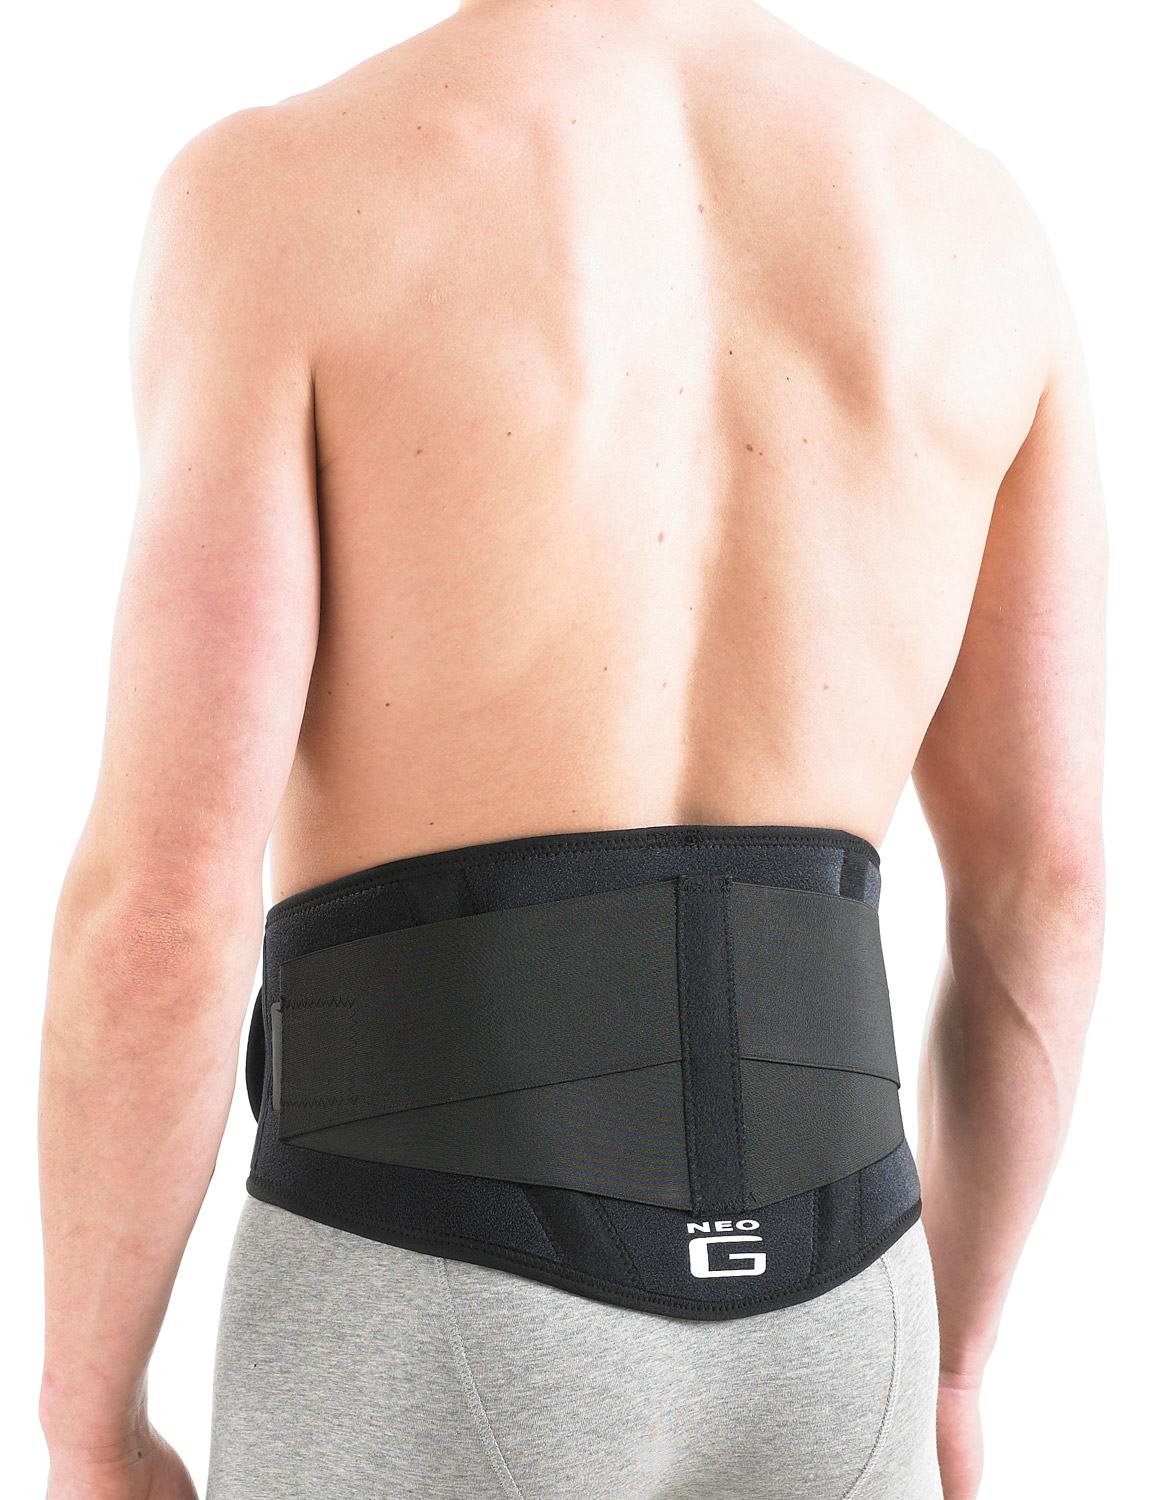 890 - BACK BRACE WITH POWER STRAPS  The durable, flexible, heat therapeutic neoprene helps warm stiff, aching, tired muscles and arthritic joints. The variable compression fastenings ensure a close, comfortable fit and the removable insert is designed to help provide a soothing lumbar massage as you move, aiding with muscular spasm.